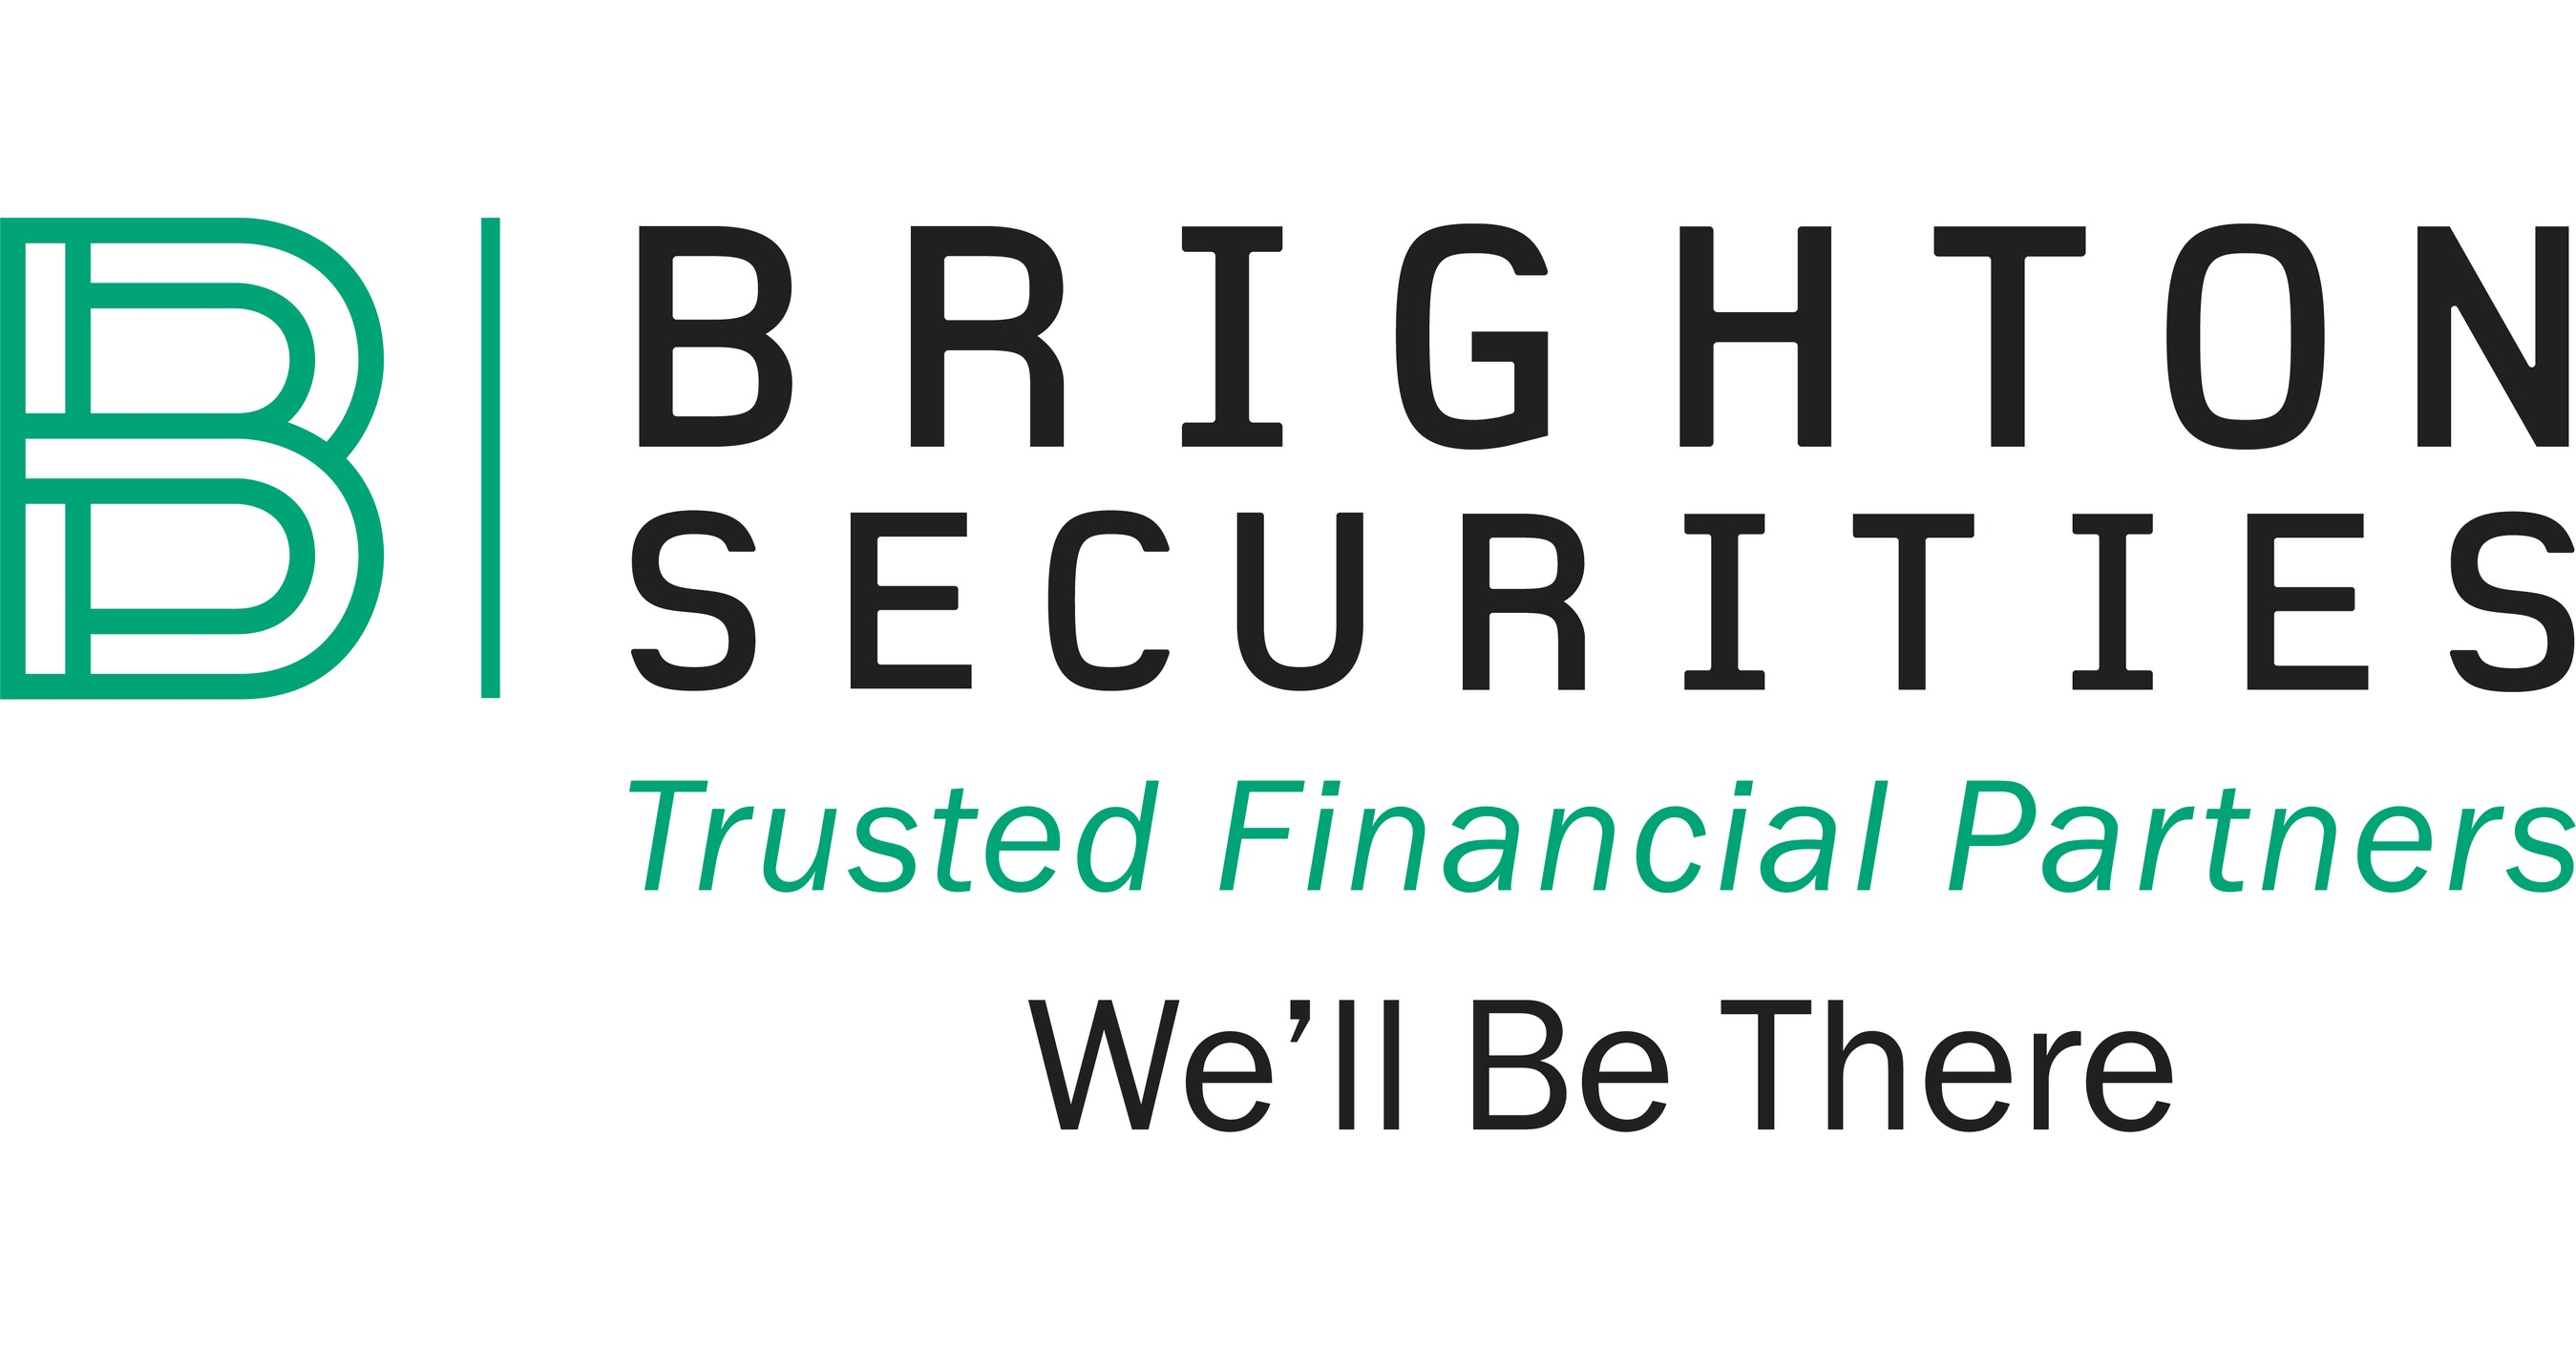 Brighton Securities Hires Deanna LaPier as a Financial Advisor